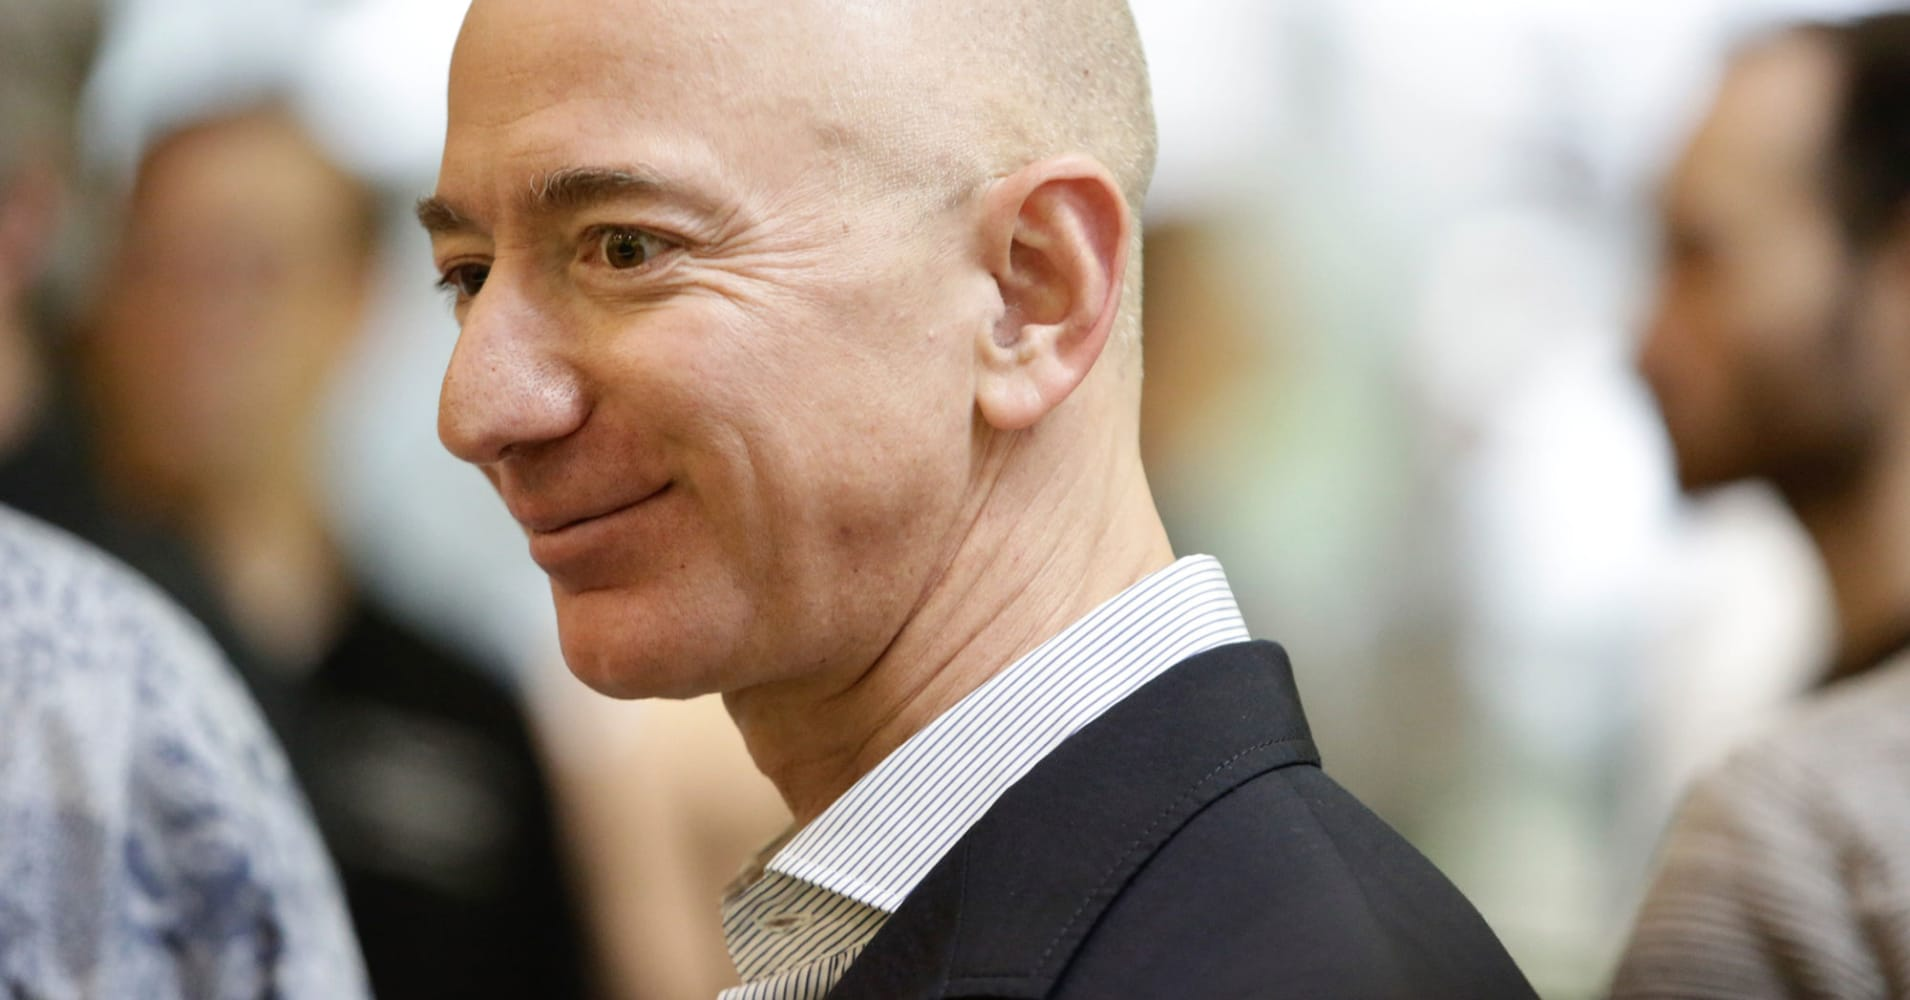 Amazon now has a multibillion-dollar advertising business